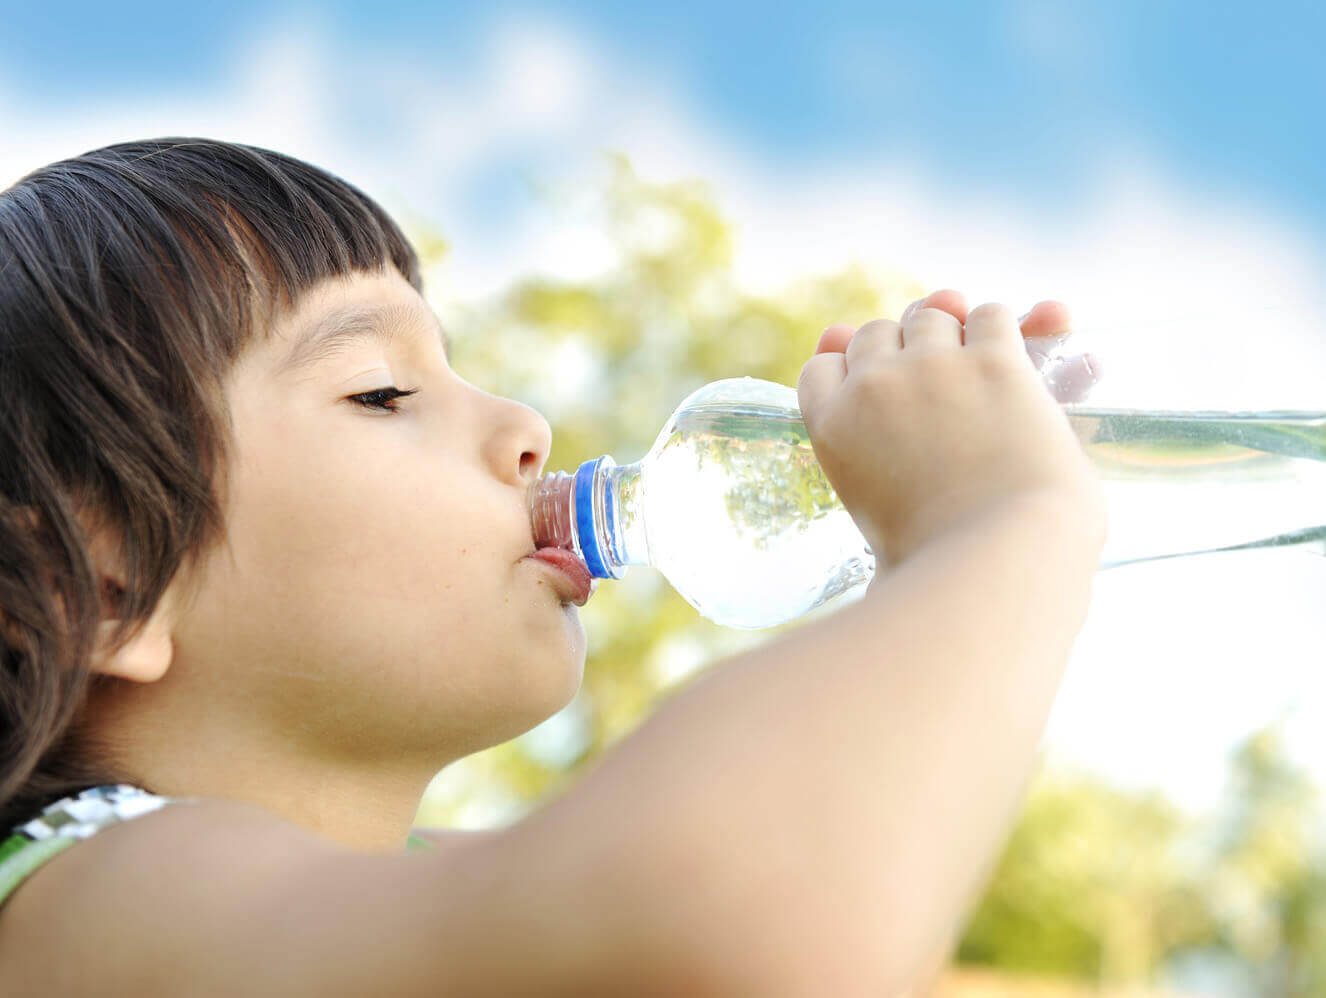 A Purified Water Vending Business Benefits Kids